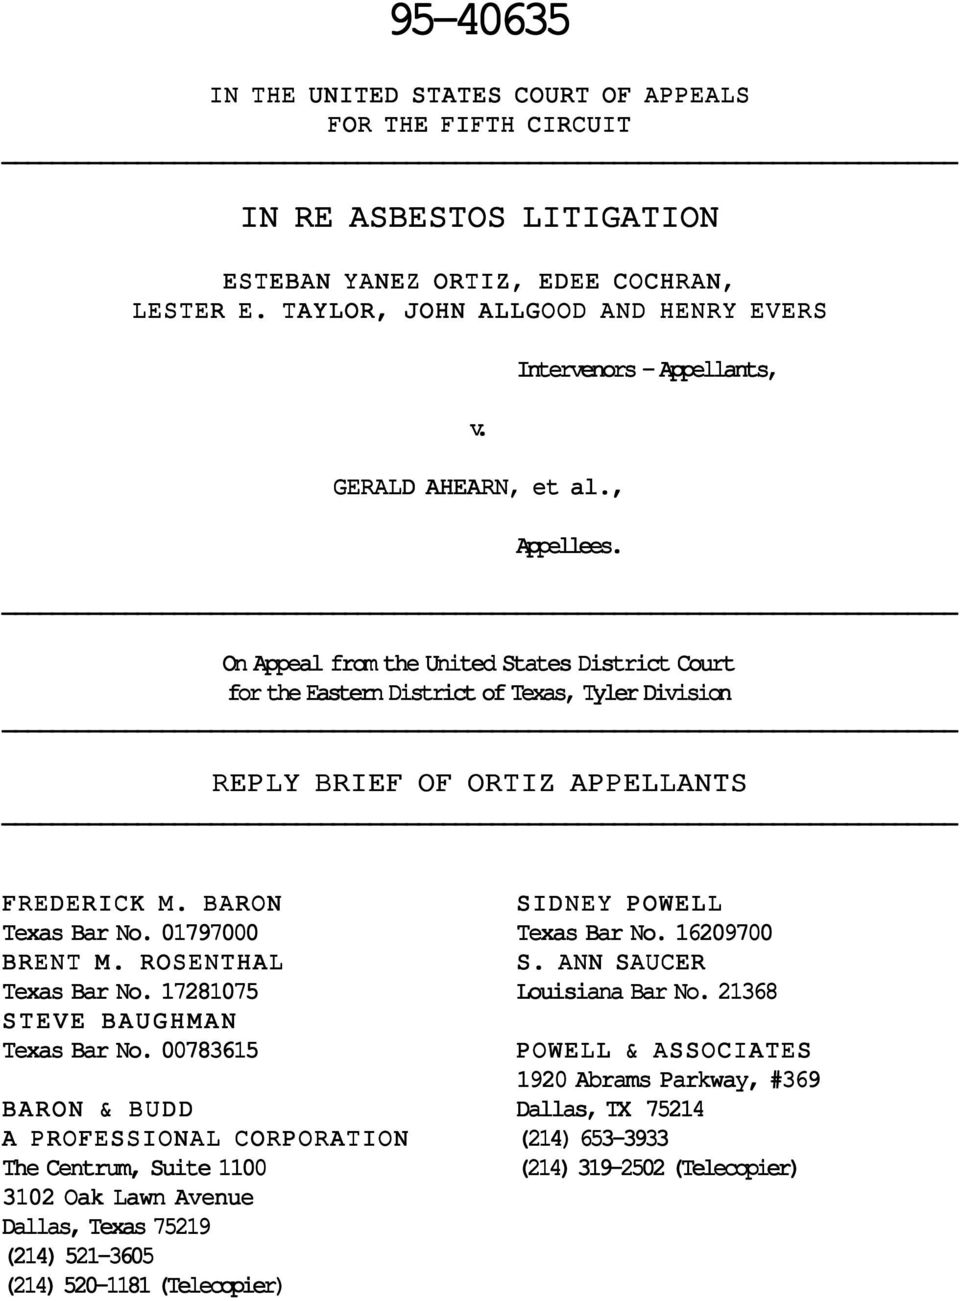 On Appeal from the United States District Court for the Eastern District of Texas, Tyler Division REPLY BRIEF OF ORTIZ APPELLANTS FREDERICK M. BARON SIDNEY POWELL Texas Bar No. 01797000 Texas Bar No.